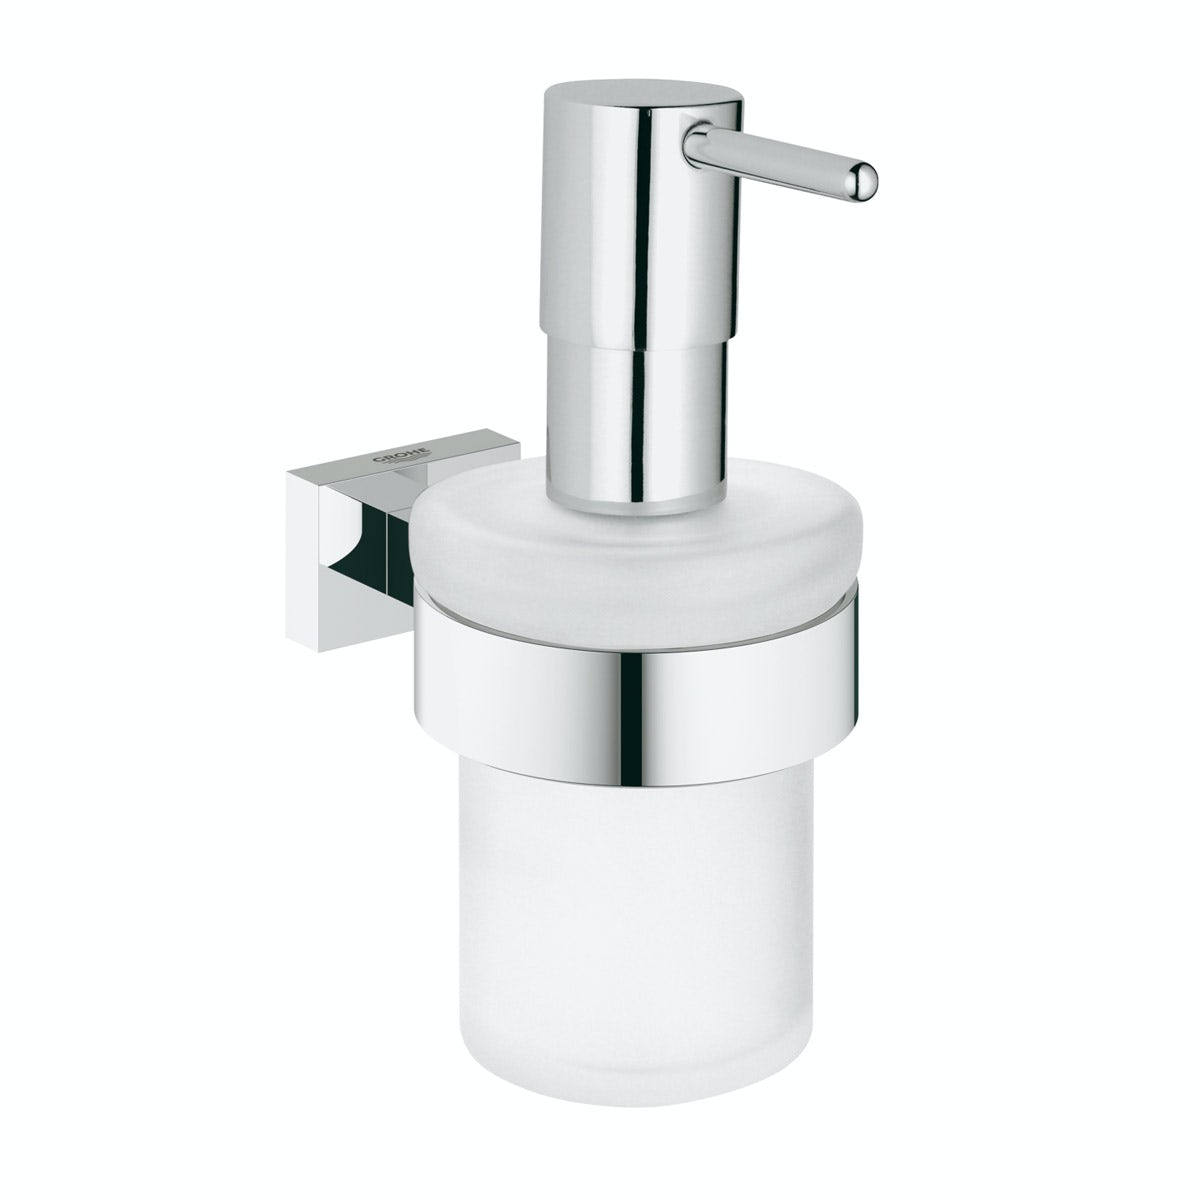 Grohe Essentials Cube soap dispenser and holder